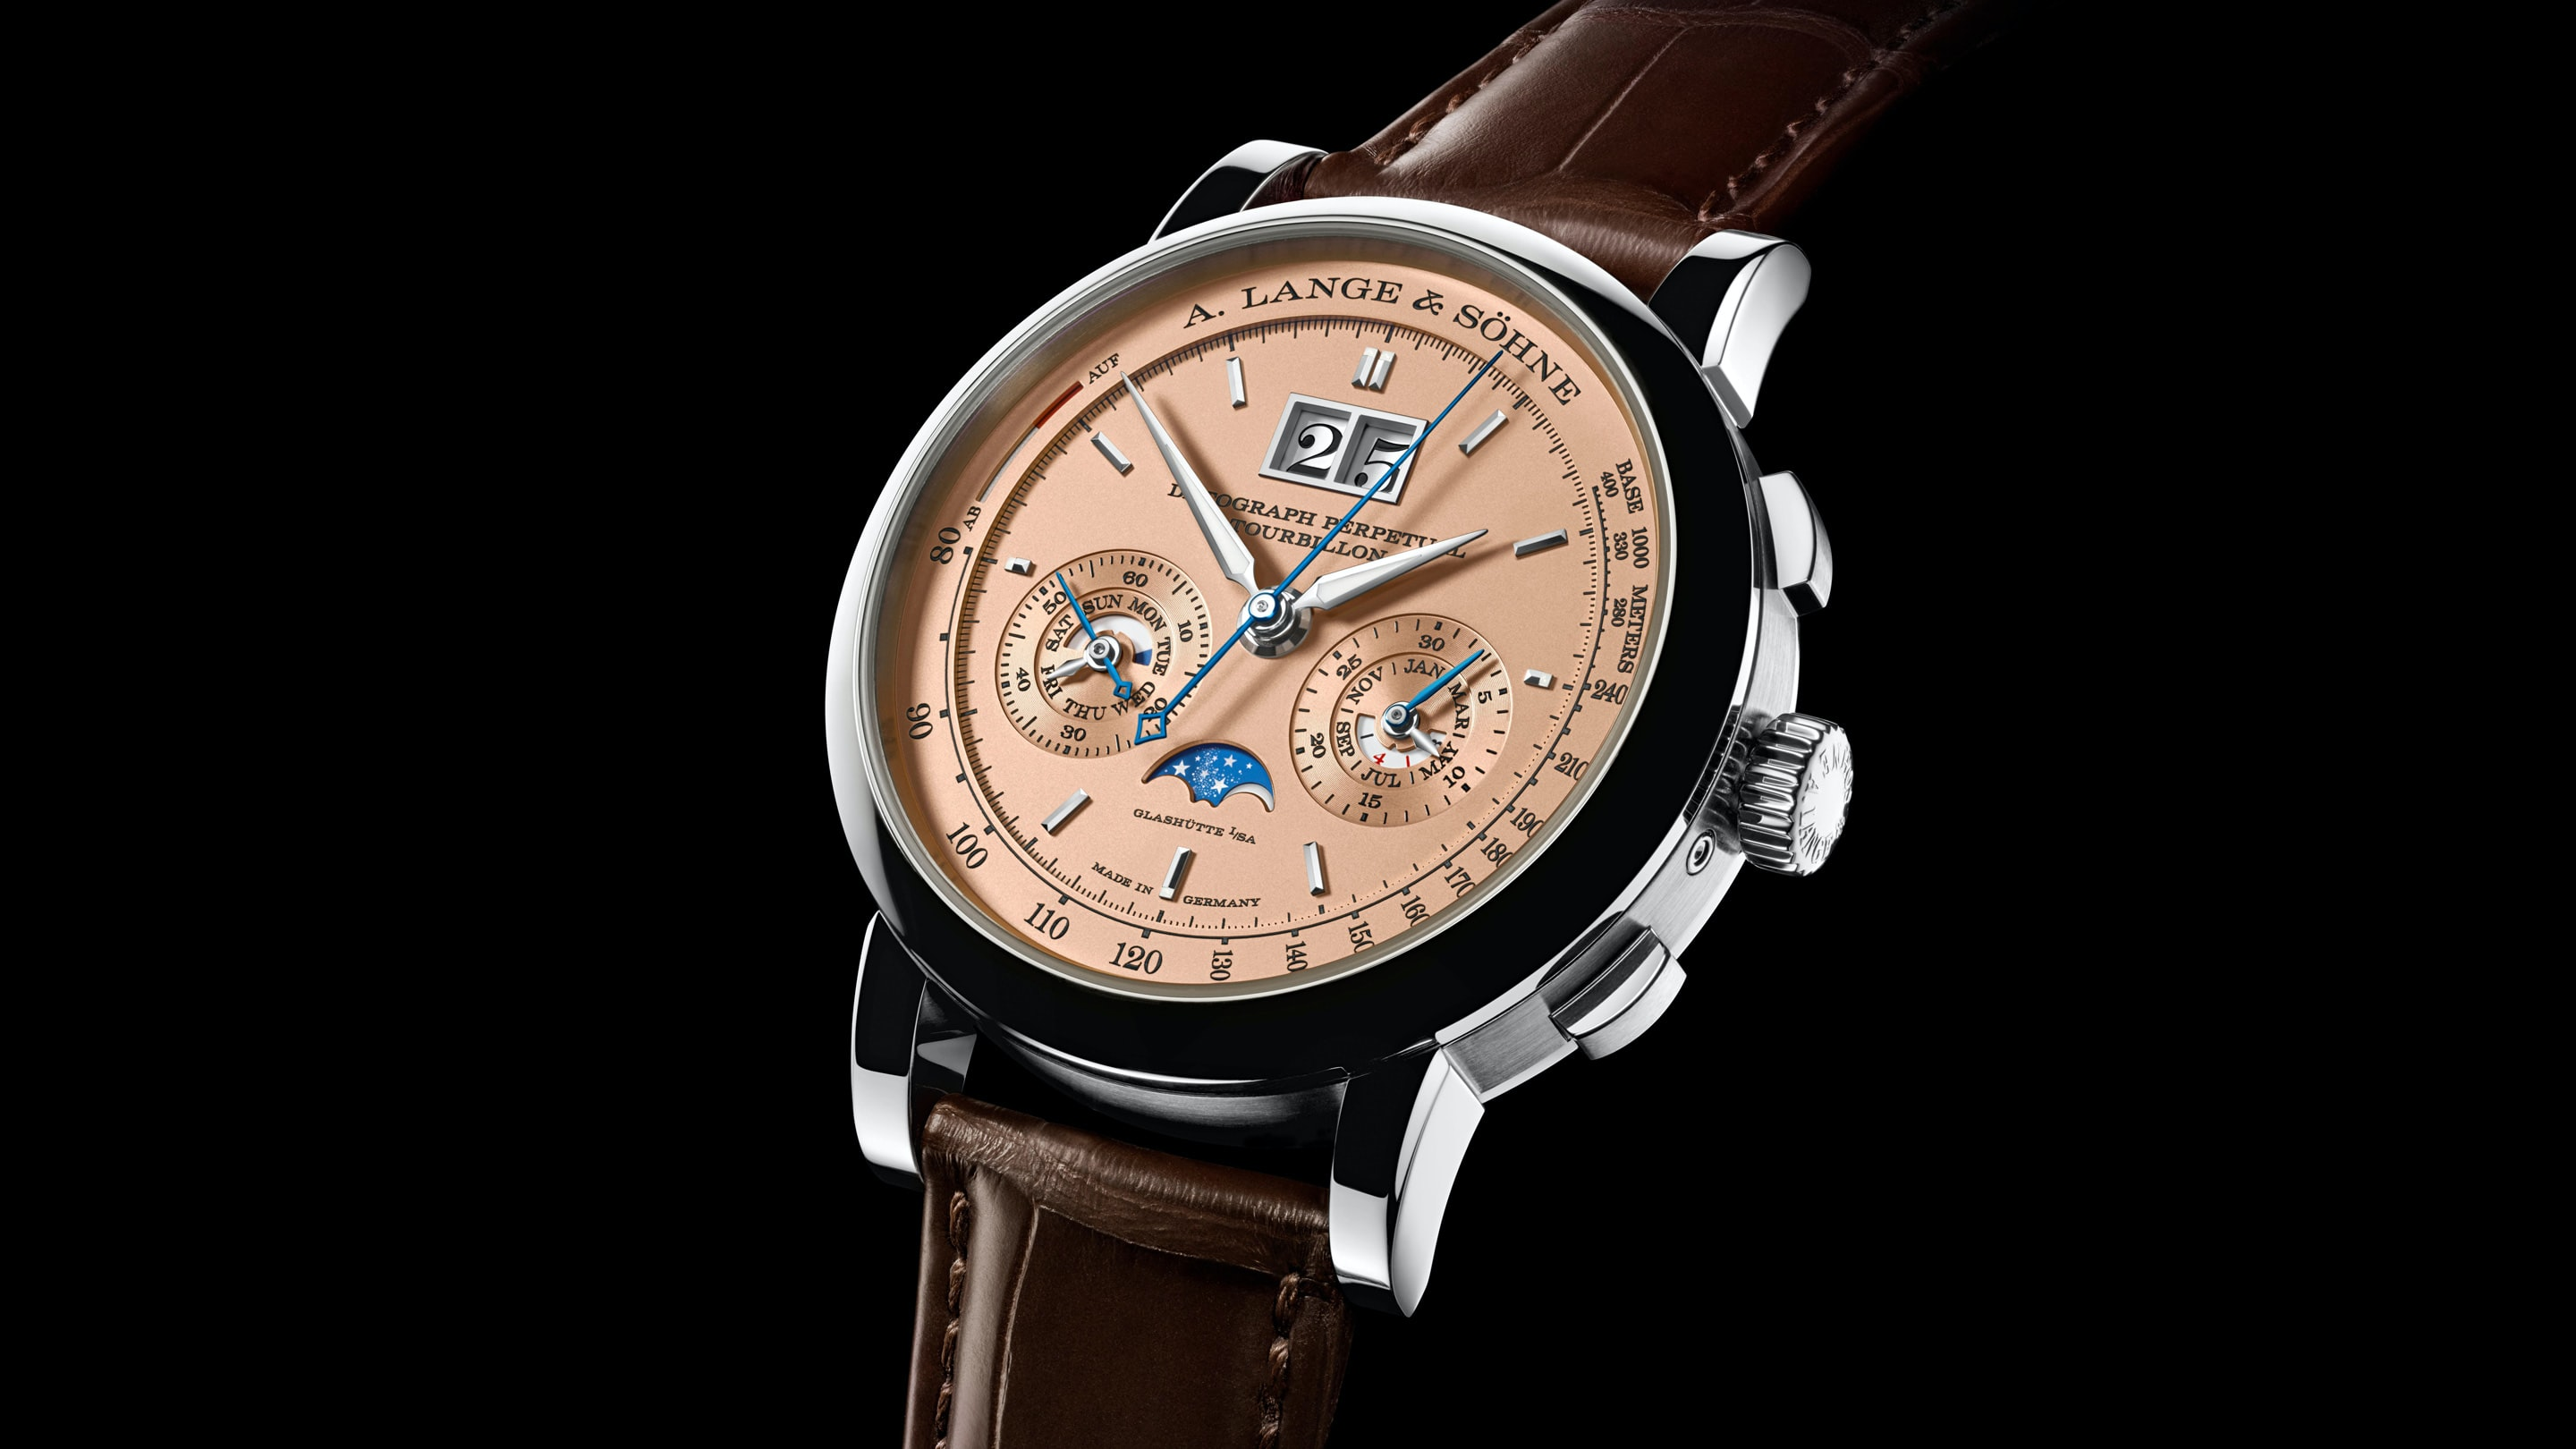 Introducing: The A. Lange & Söhne Datograph Perpetual Tourbillon With Salmon Dial